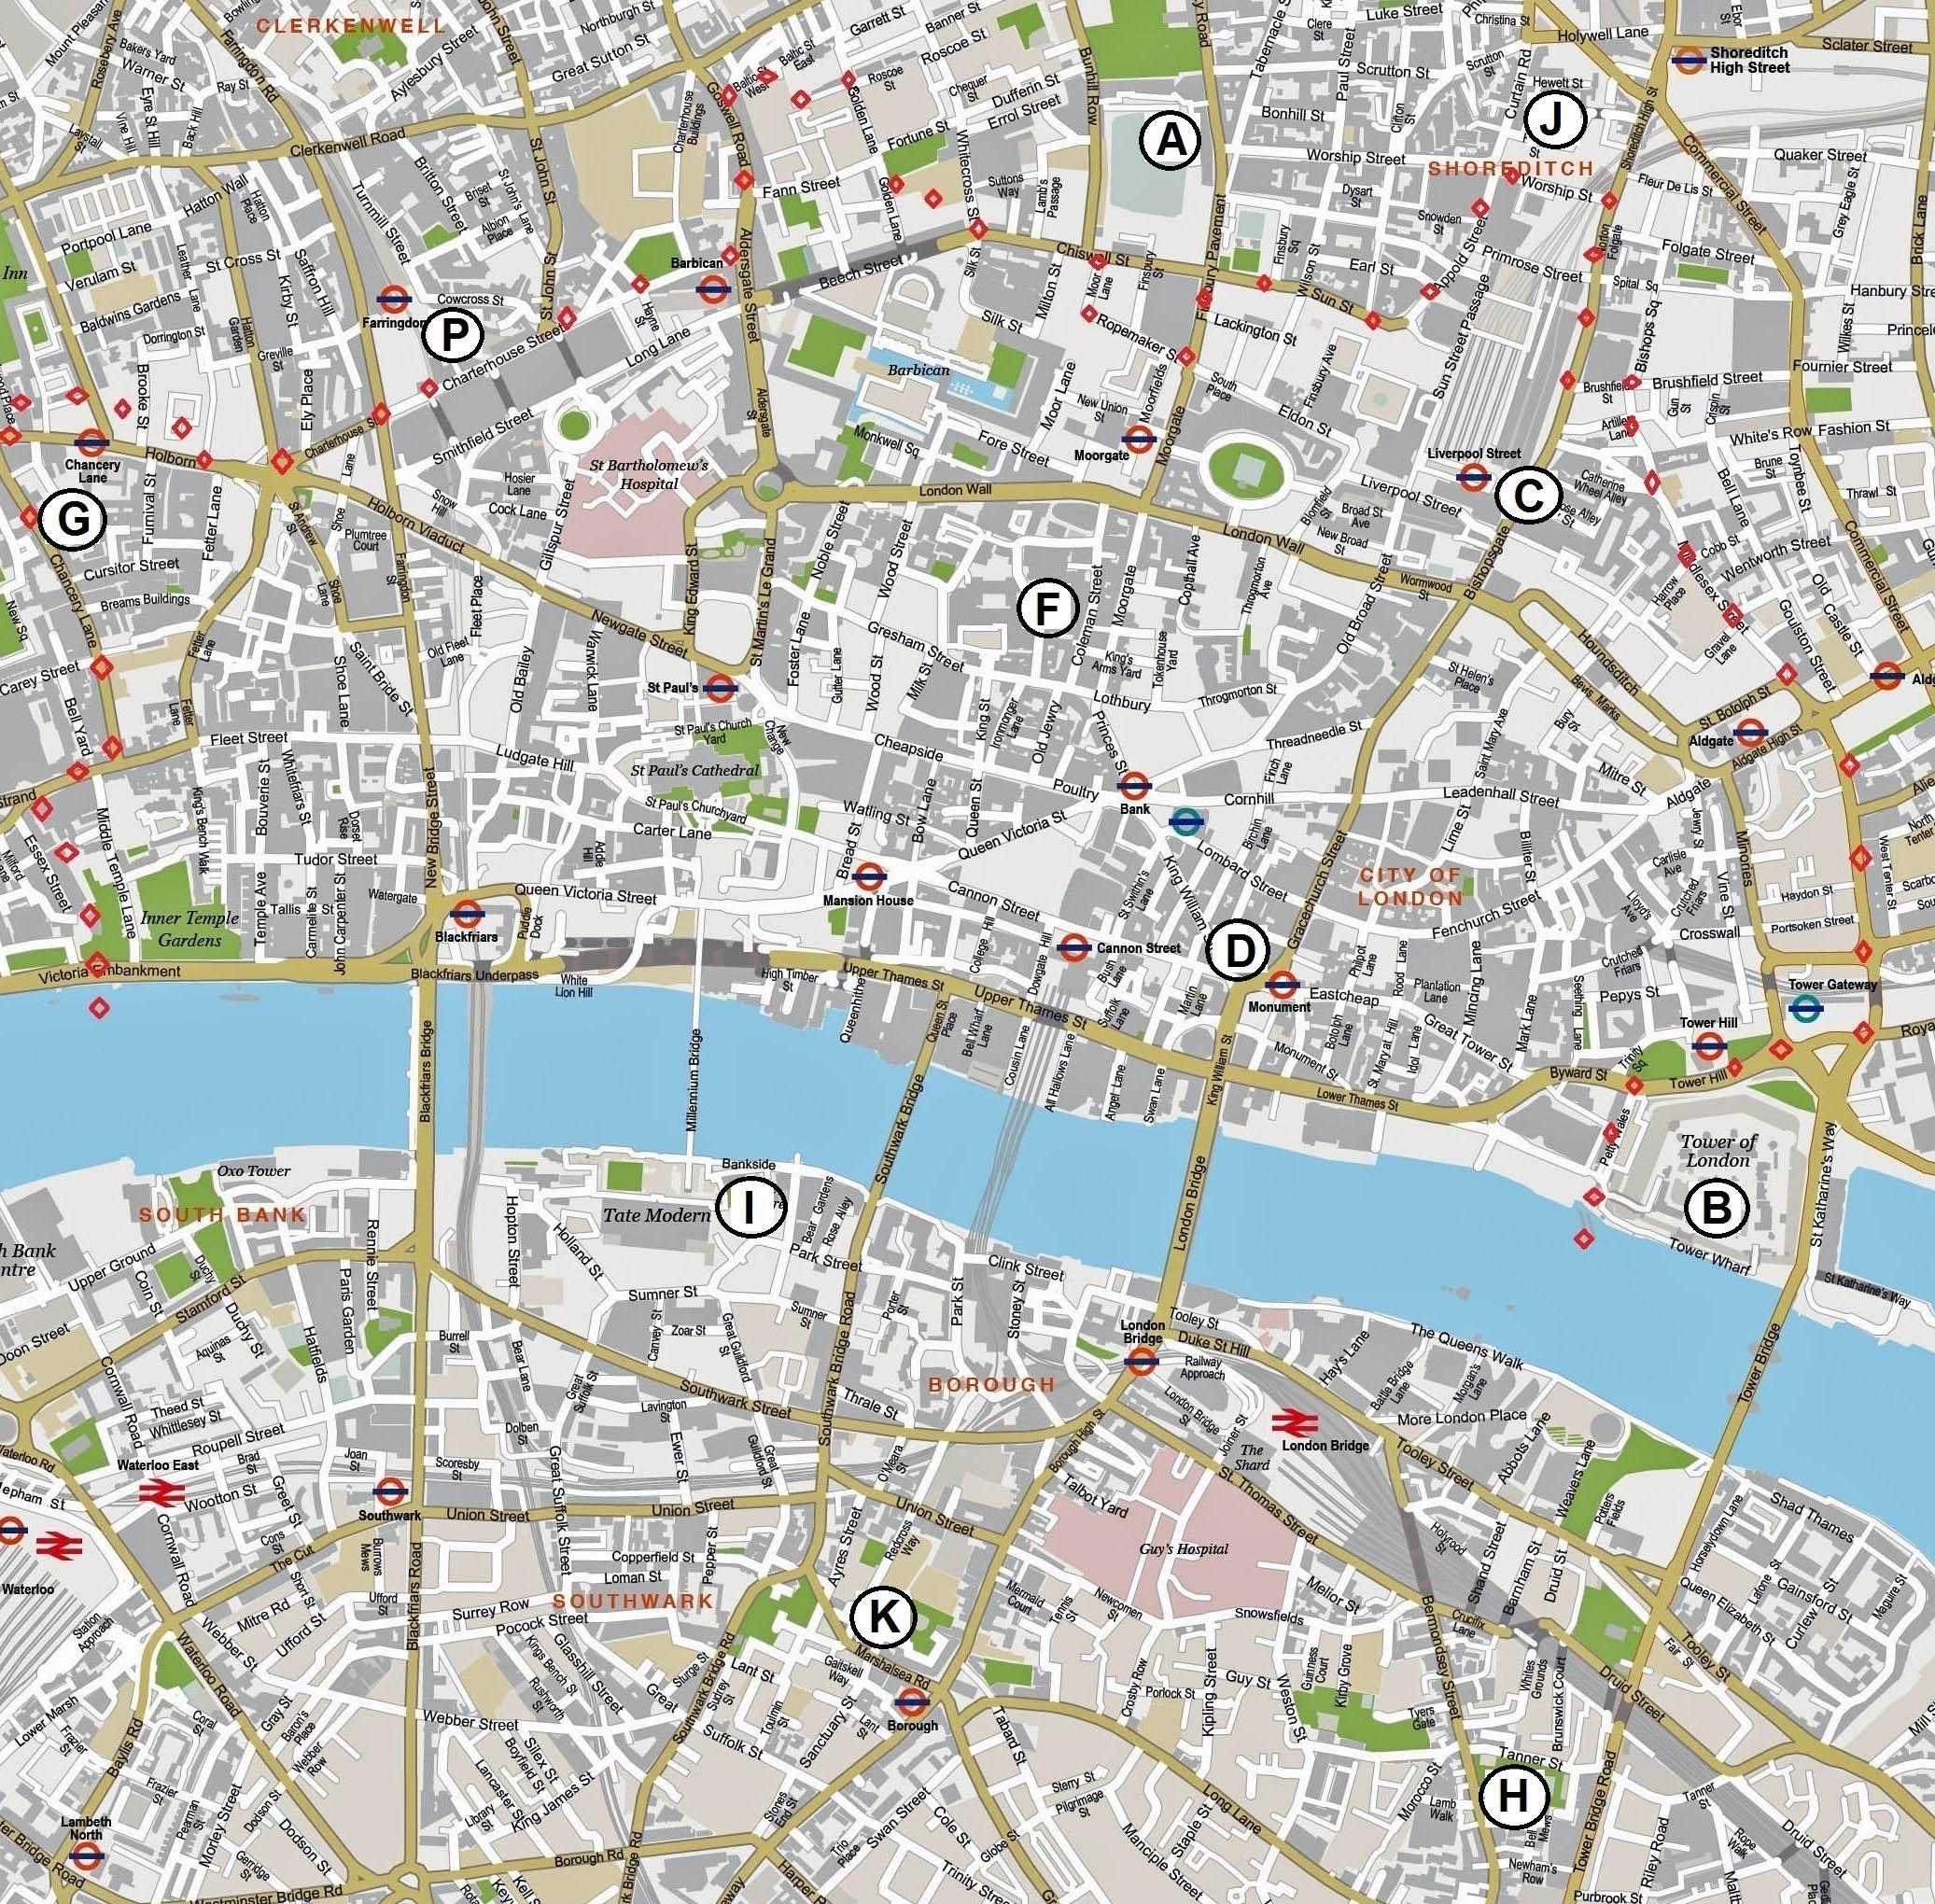 zzxc3central-london-detailed-2a-copy-east